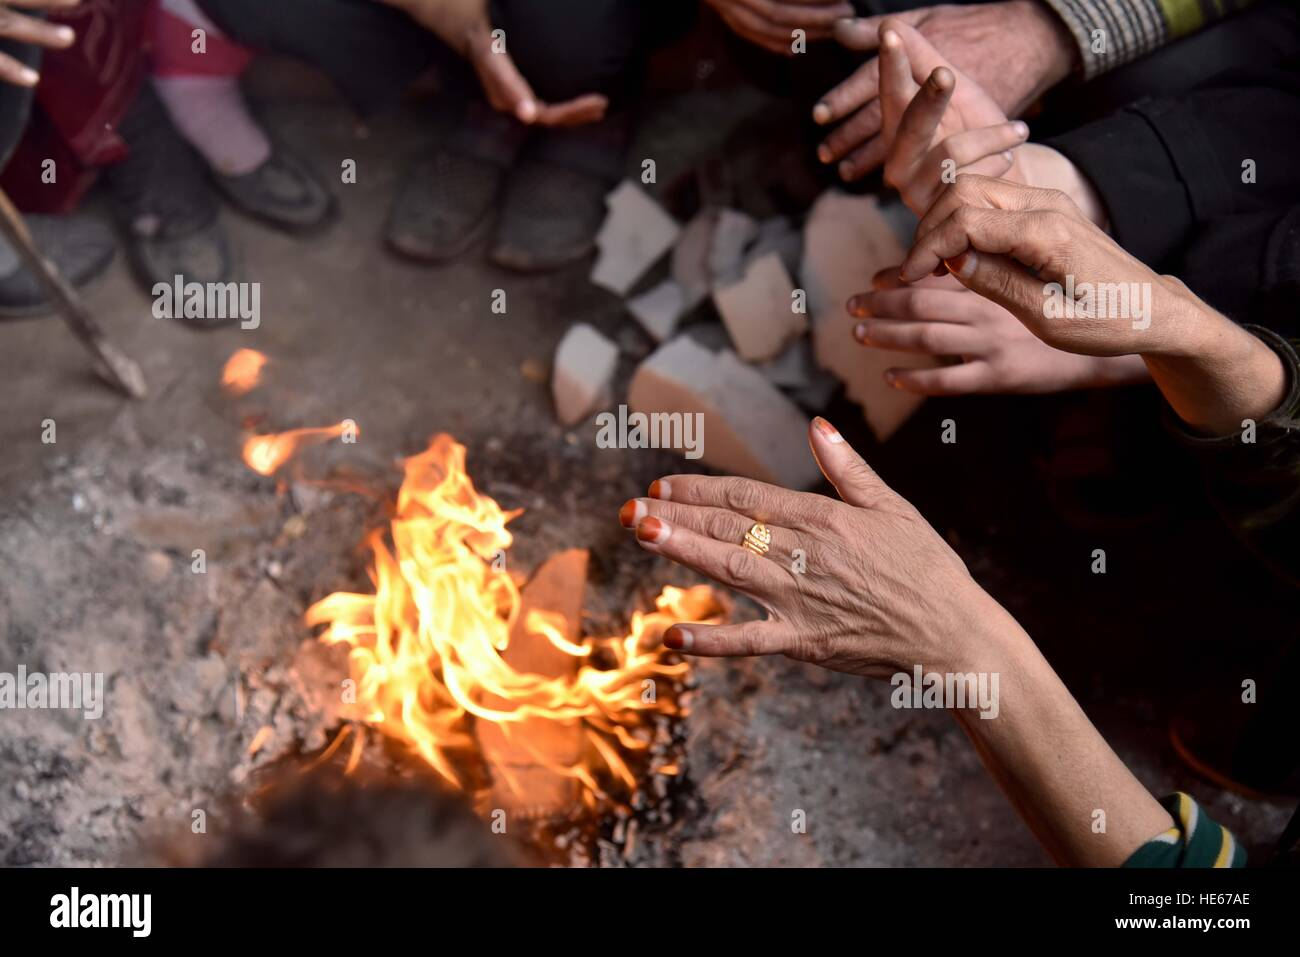 Aleppo, Syria. 18th Dec, 2016. Displaced Syrians make a fire to keep warm at the Jibreen temporary shelter, south - Stock Image